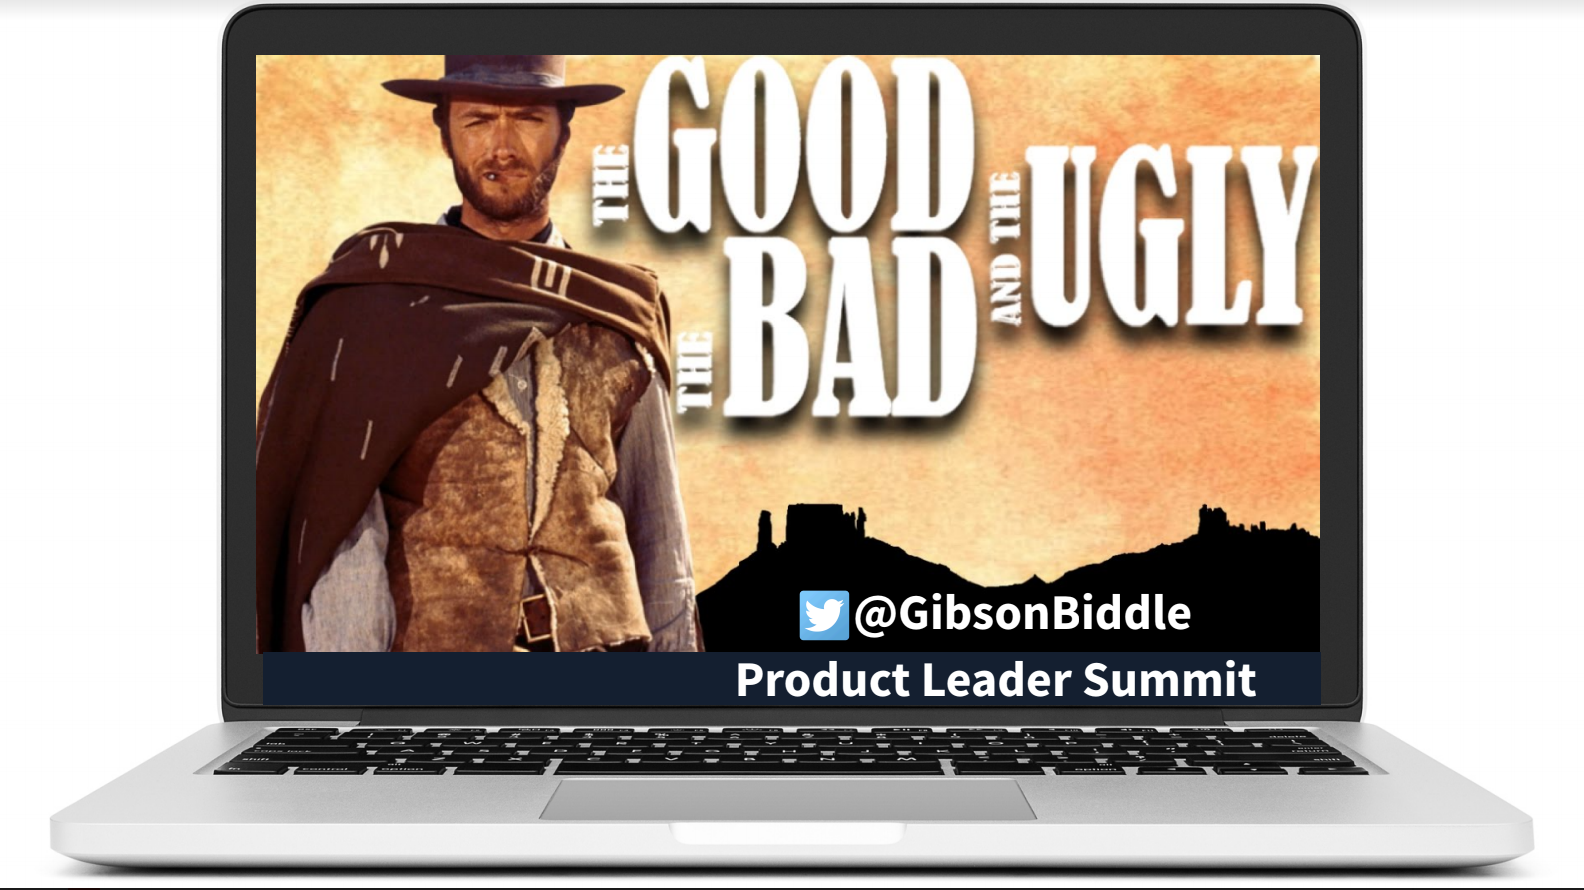 Gibson Biddle: Digital transformation, the good, the bad & the ugly